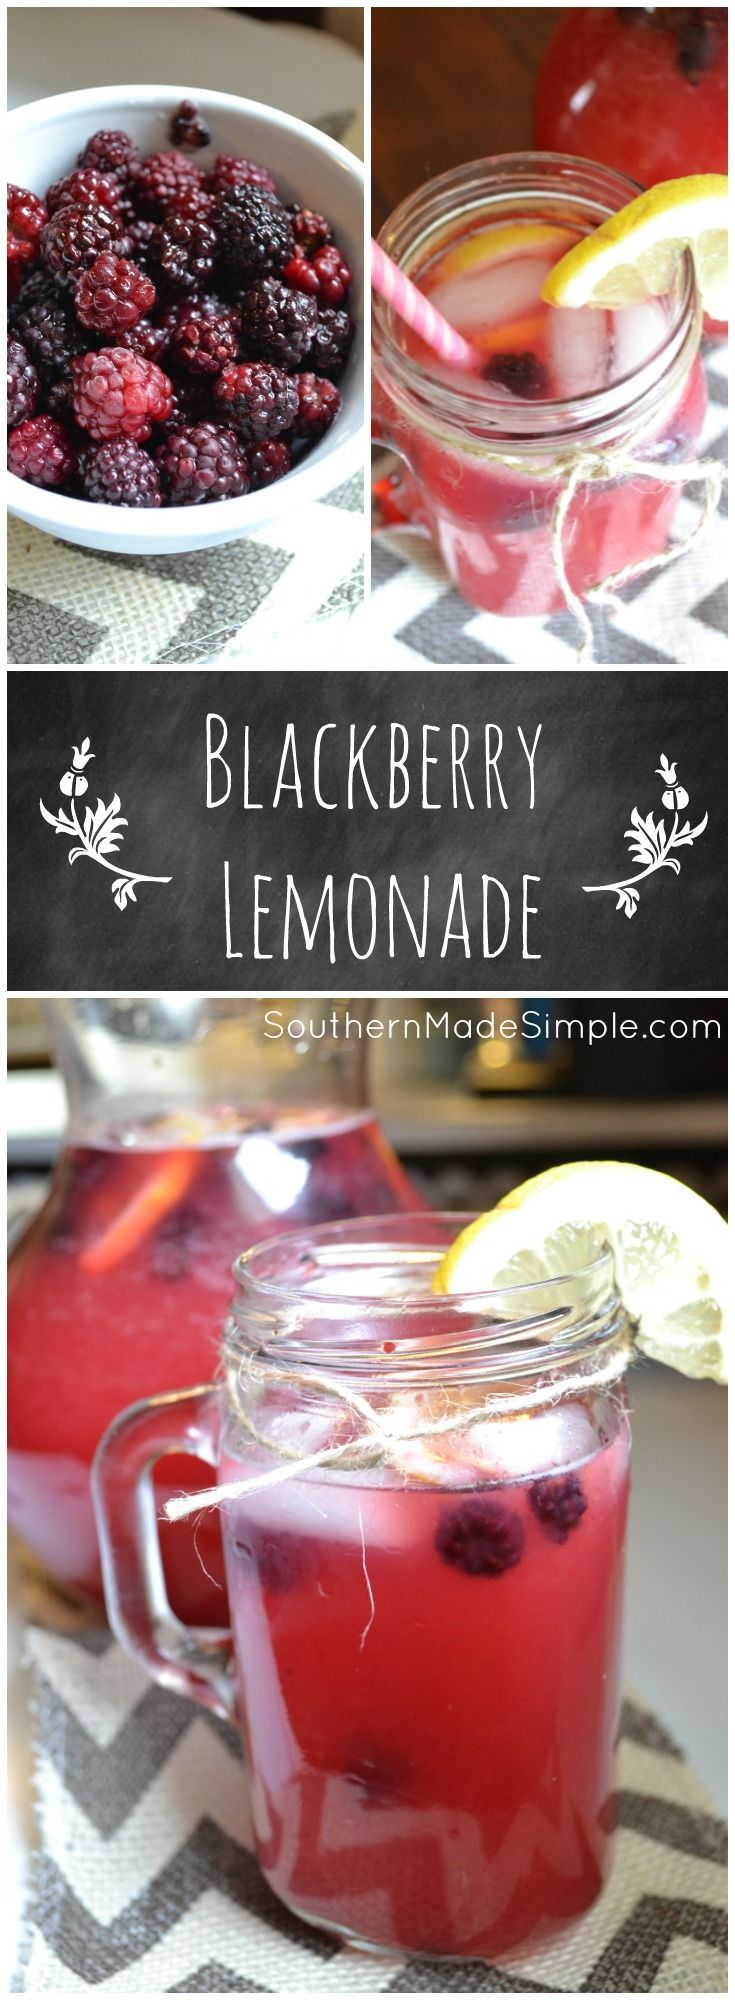 Refreshing Blackberry Lemonade - A PERFECT summertime treat! (This would be so good with gin!)